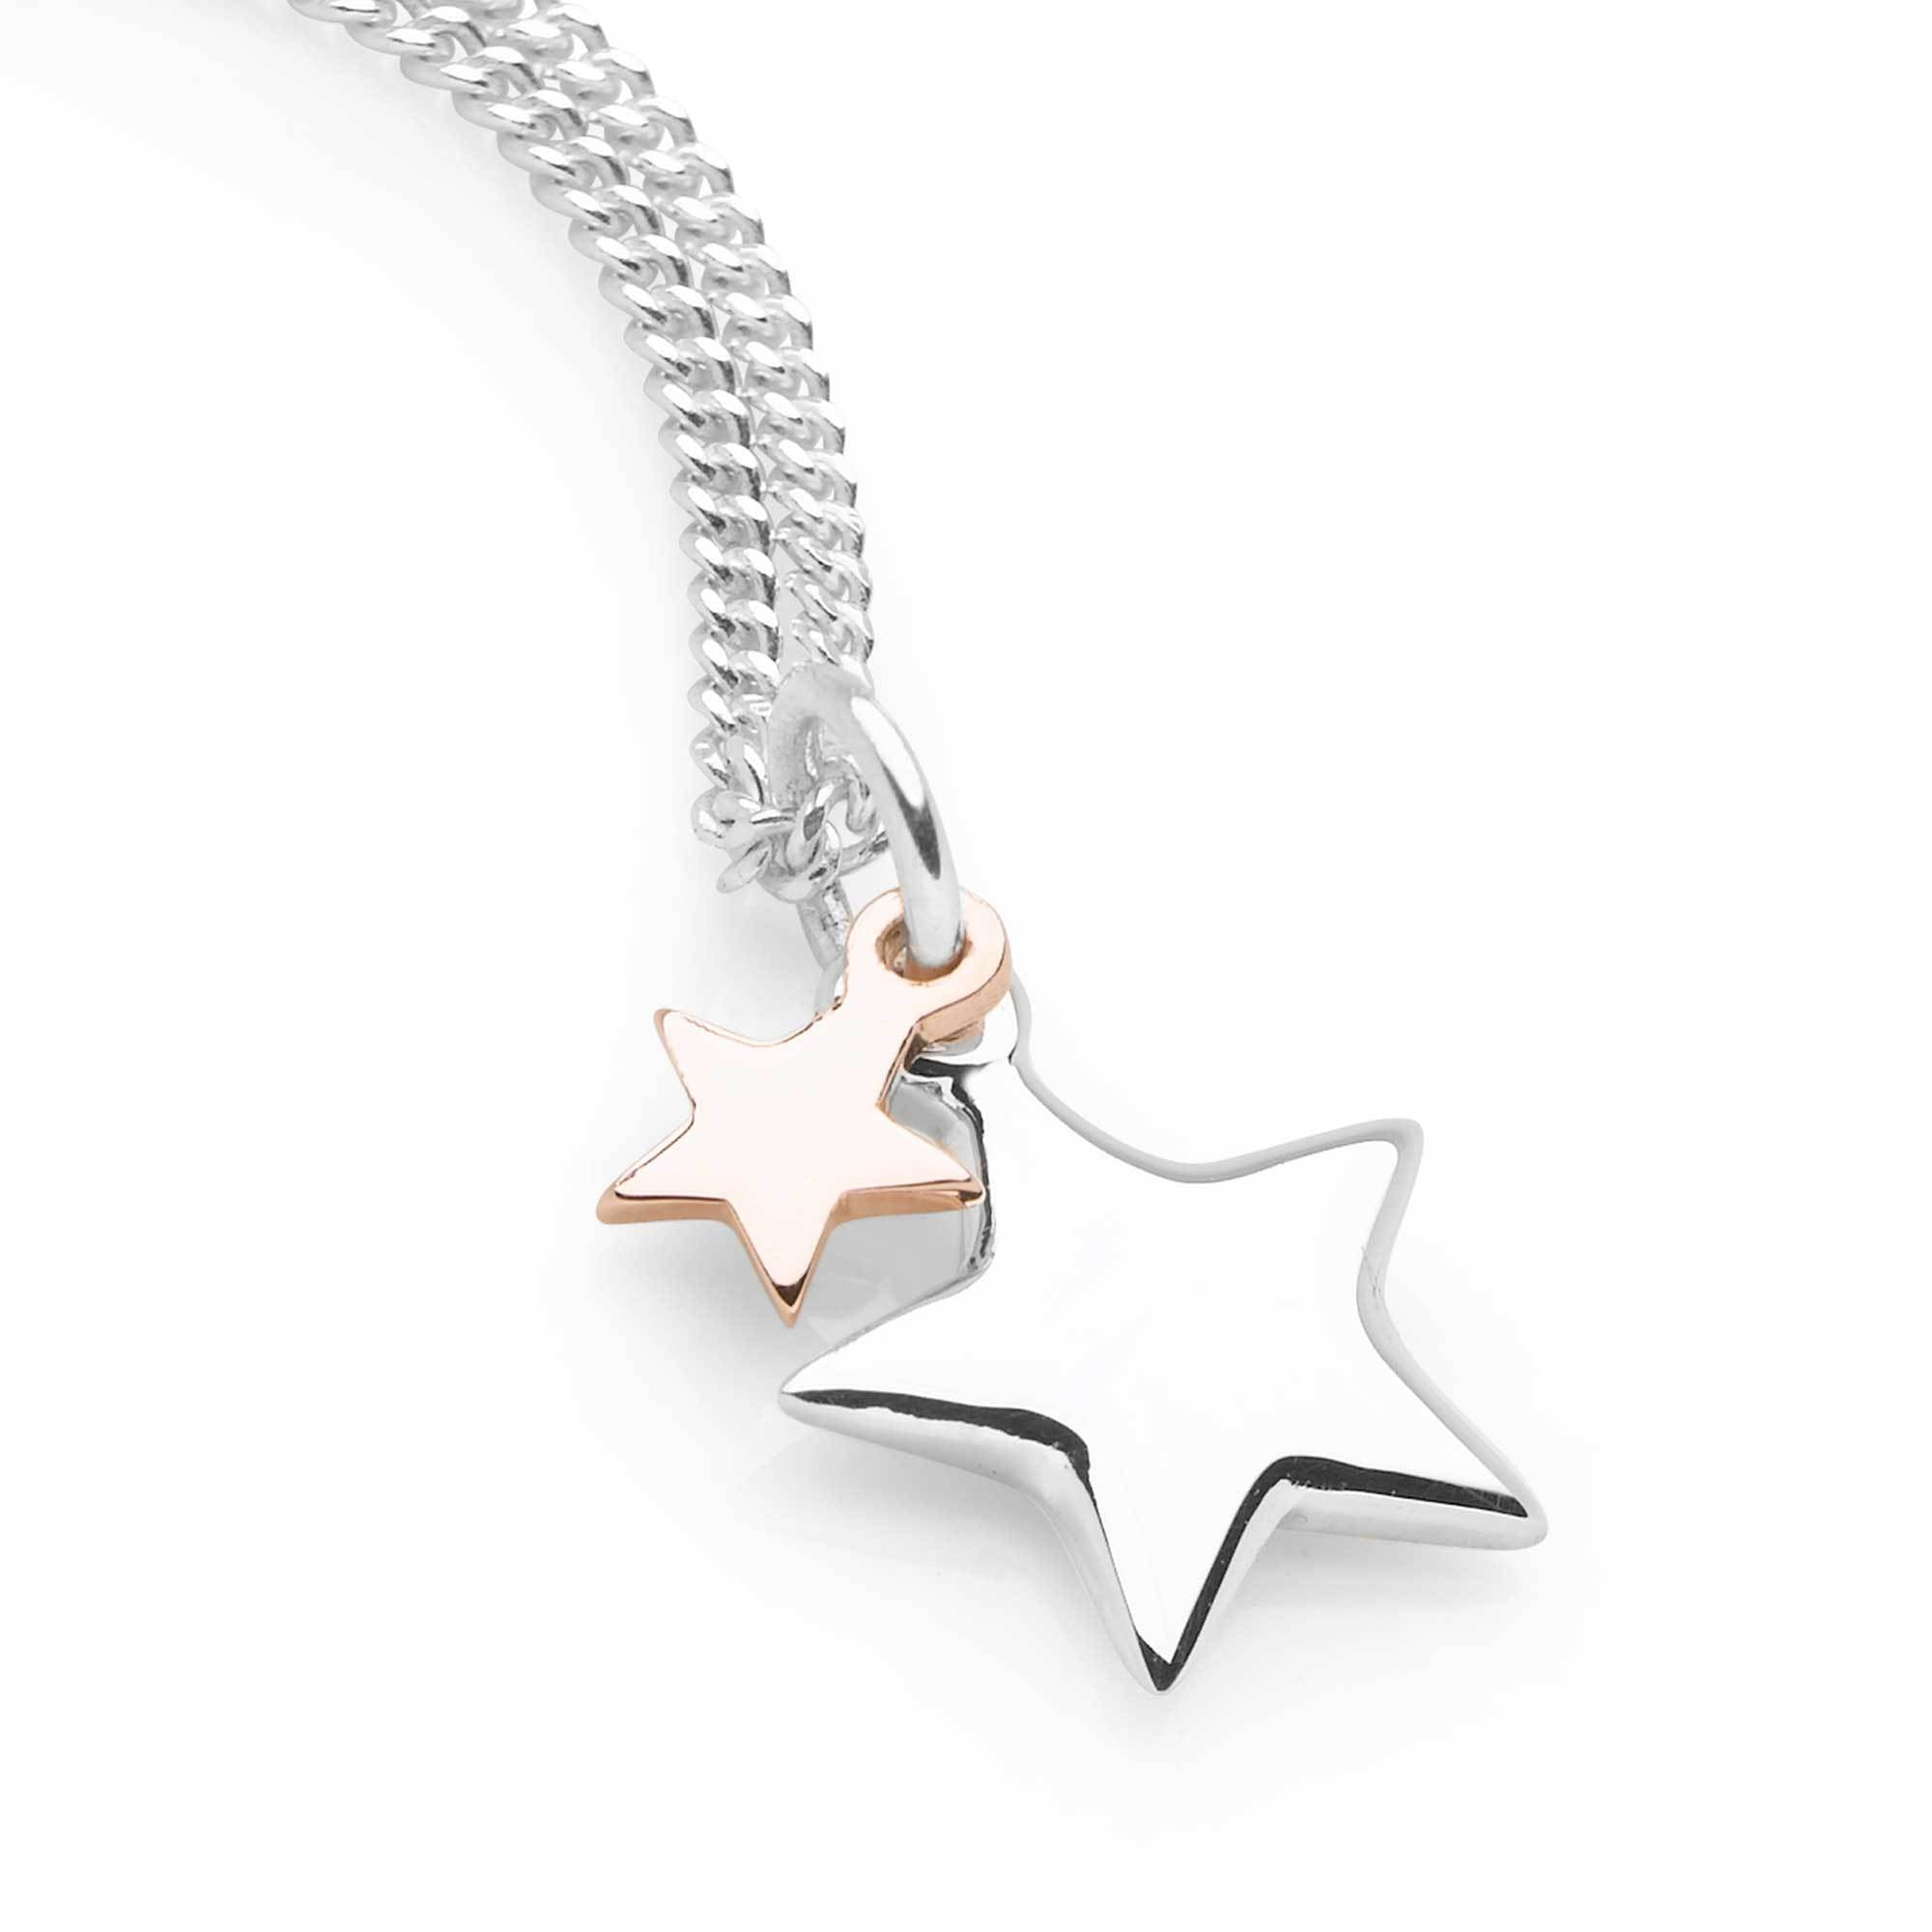 Shooting Stars Pendant (P2712) with two stars, one in sterling silver, one in gold plate